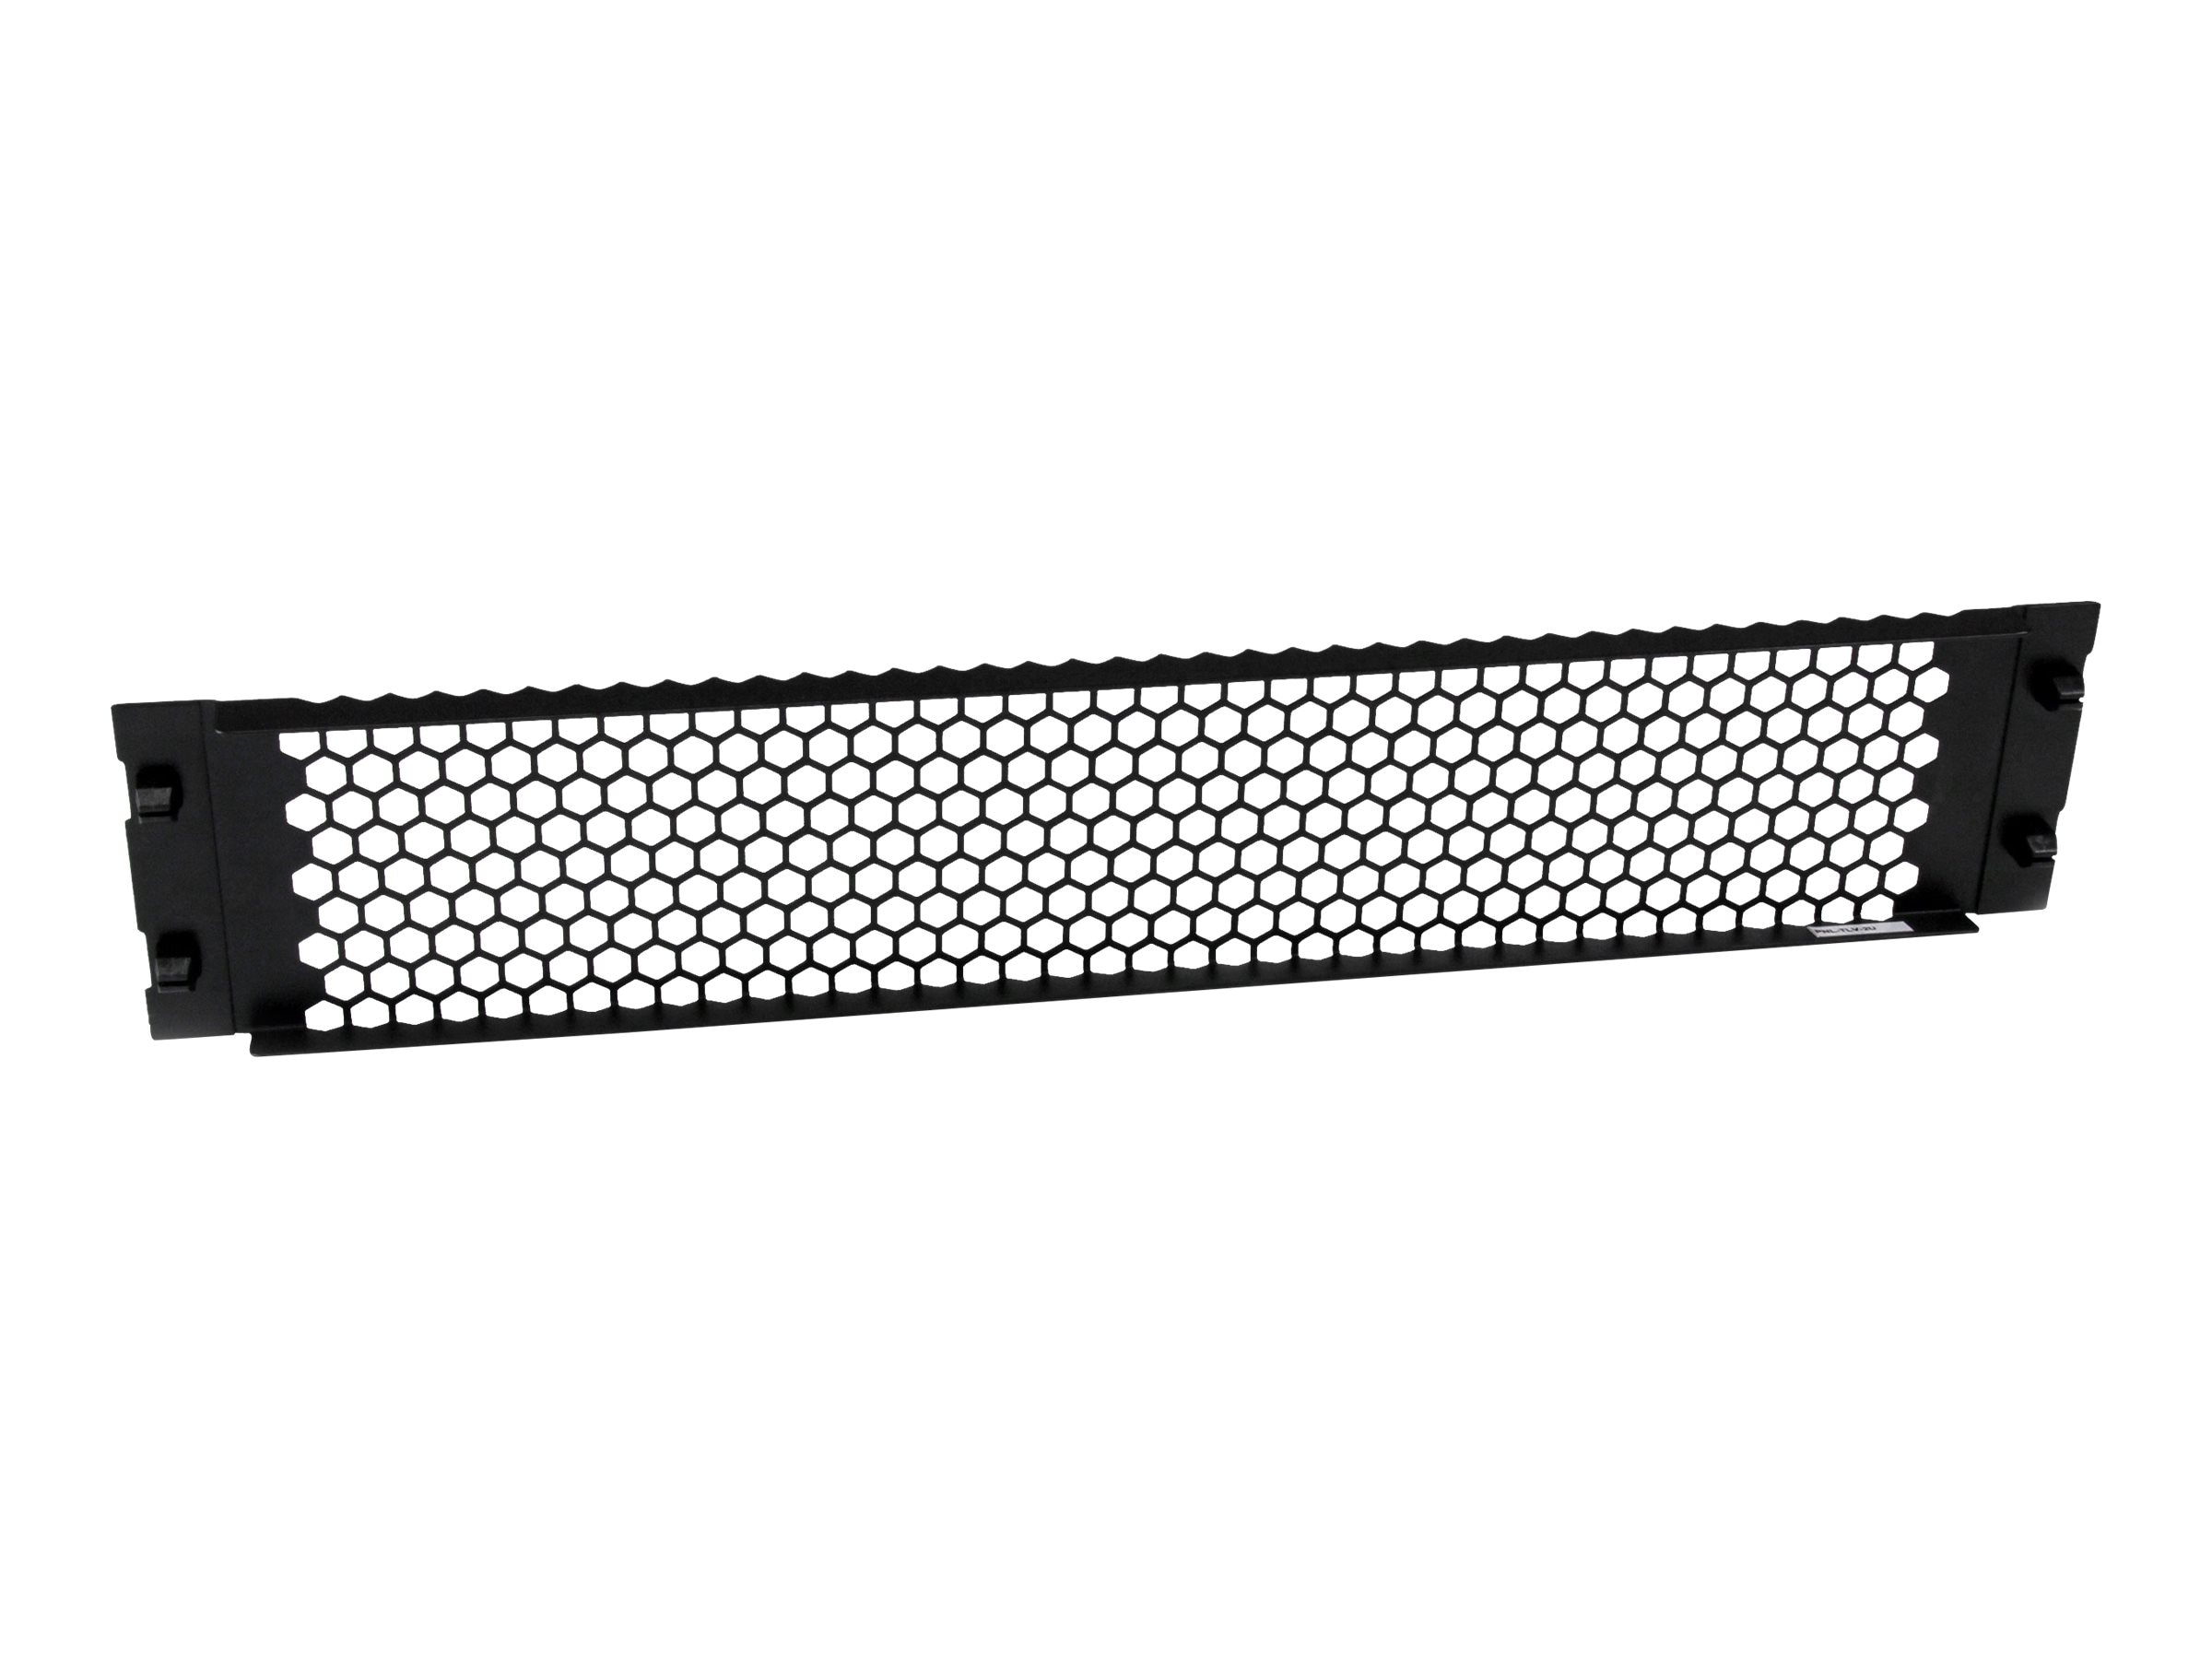 StarTech.com Tool-Less Vented Blank Rack Panel, 2U